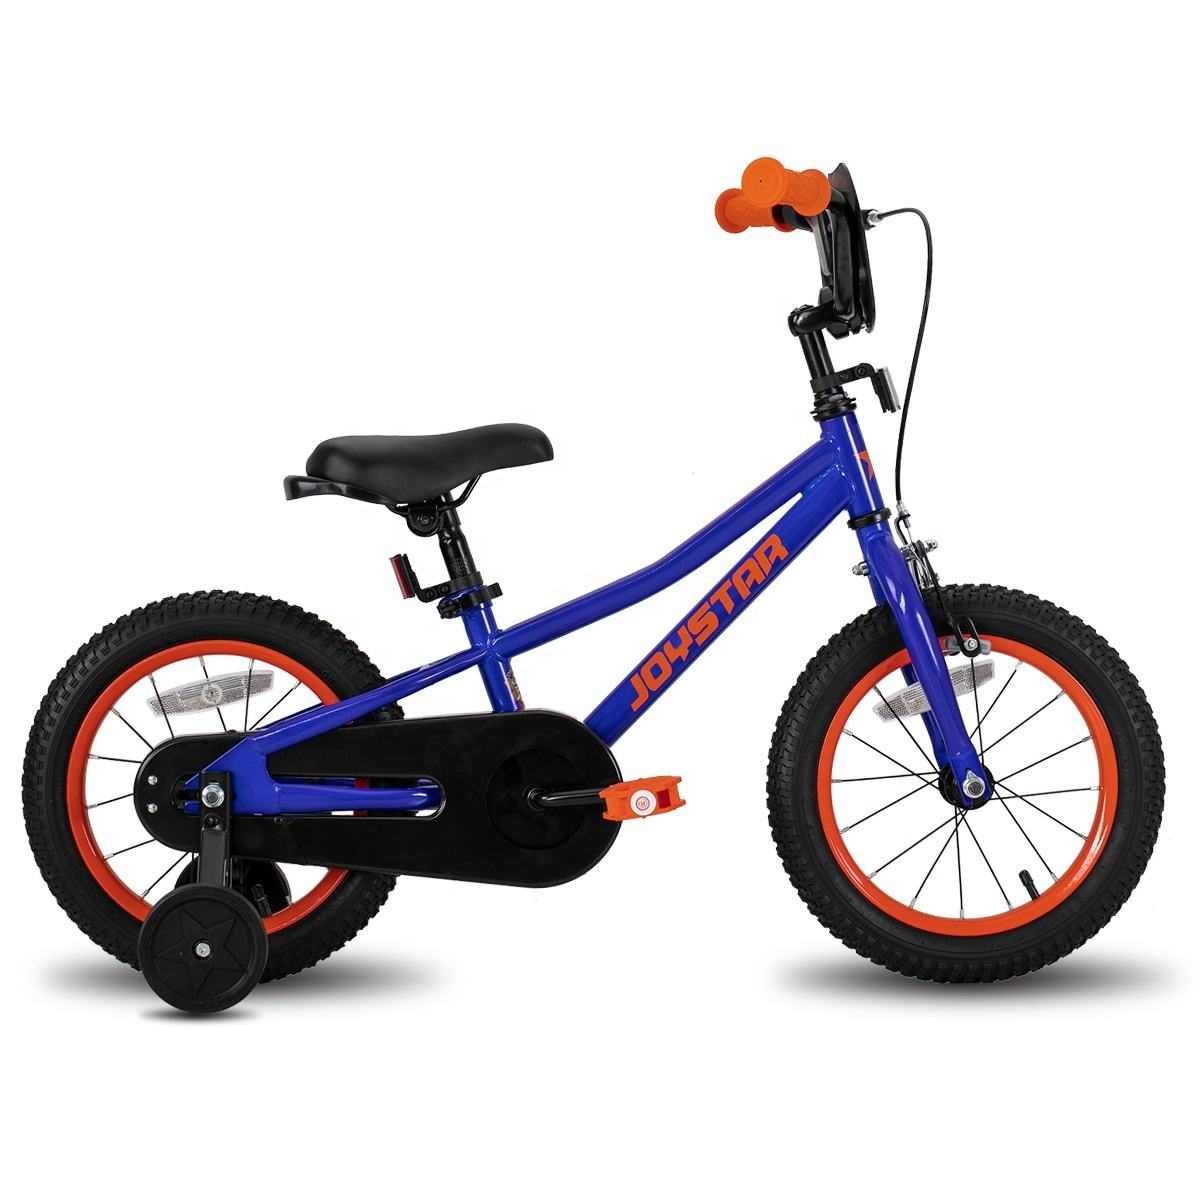 JOYKIE best price children bicycle16 inch kids mini bike kids bike for 6 years old with front board